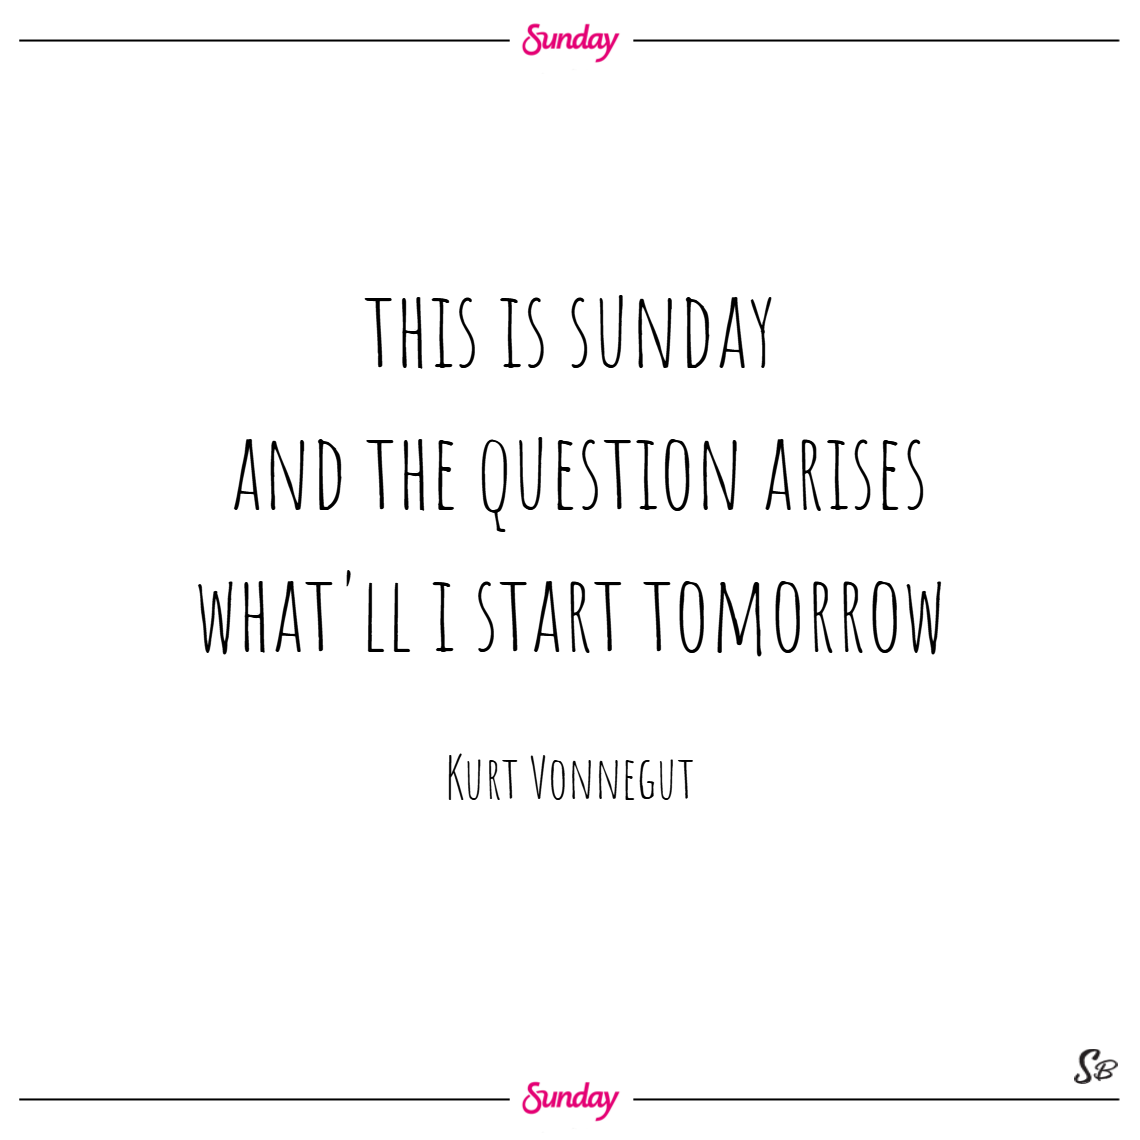 This is sunday, and the question arises, what'll i start tomorrow – kurt vonnegut